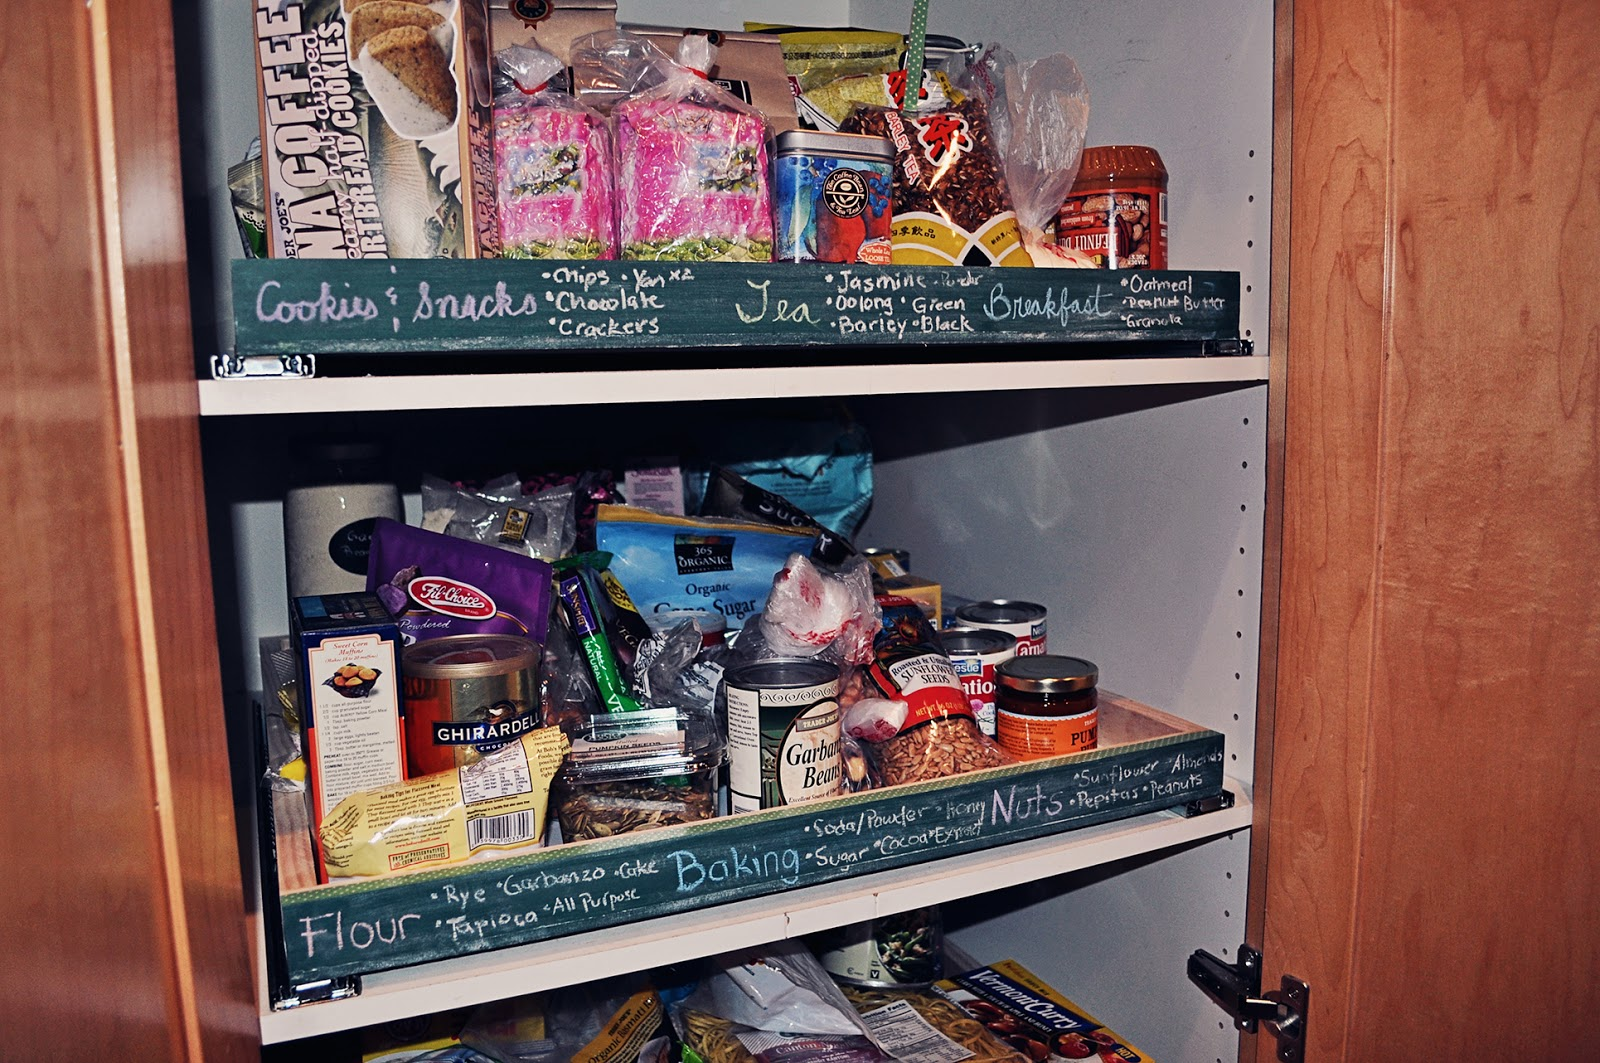 Kitchen Pull Out Pantry Shelves: A Boy, A Girl, And 2 Mini